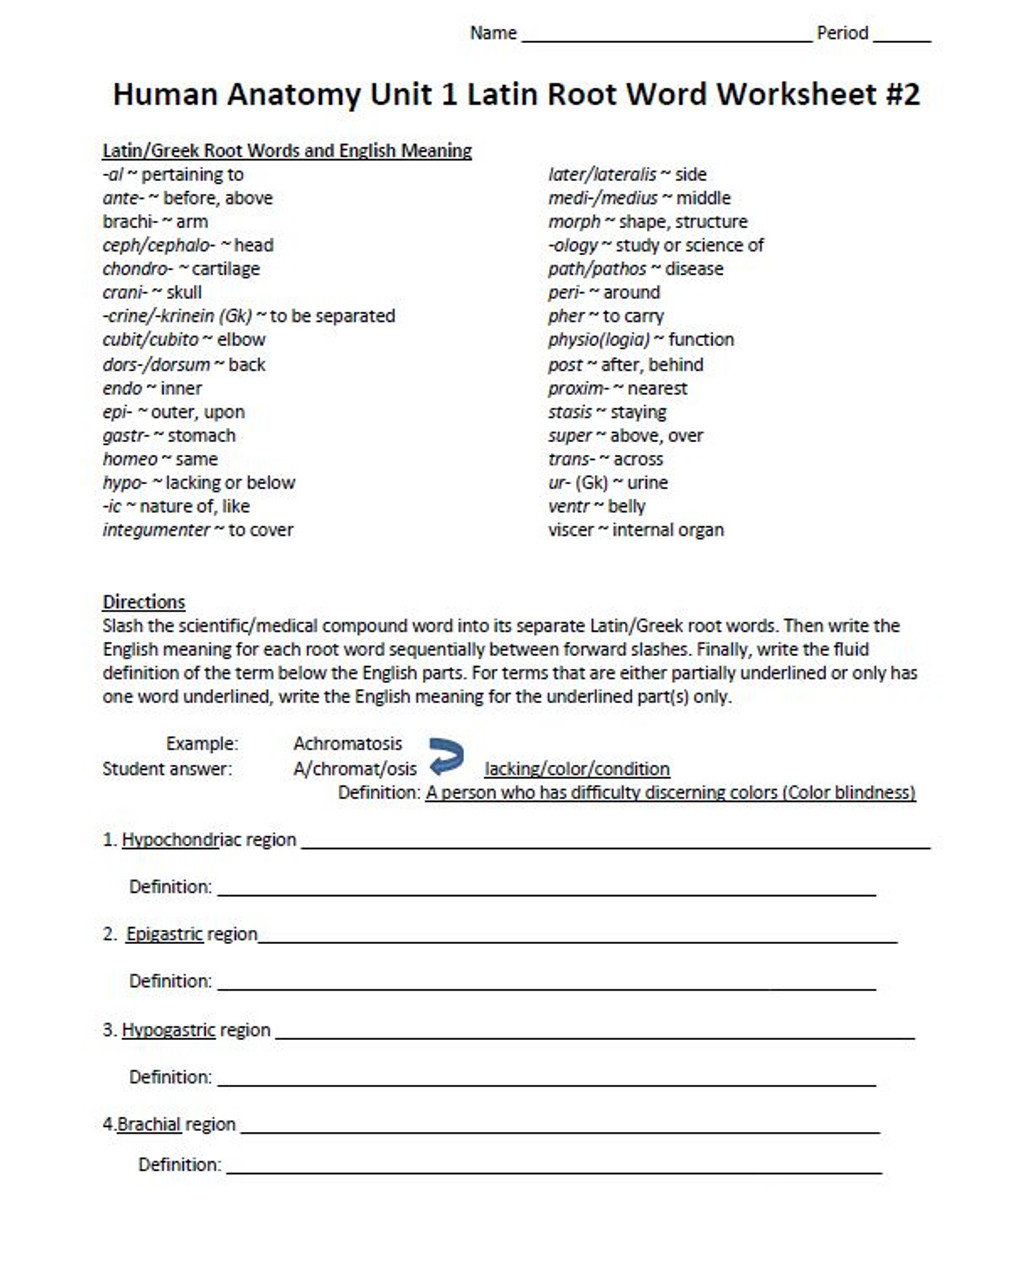 Latin Root Word Worksheet Set for Unit One Human Anatomy \u0026 Physiology -  Amped Up Learning [ 1280 x 1029 Pixel ]